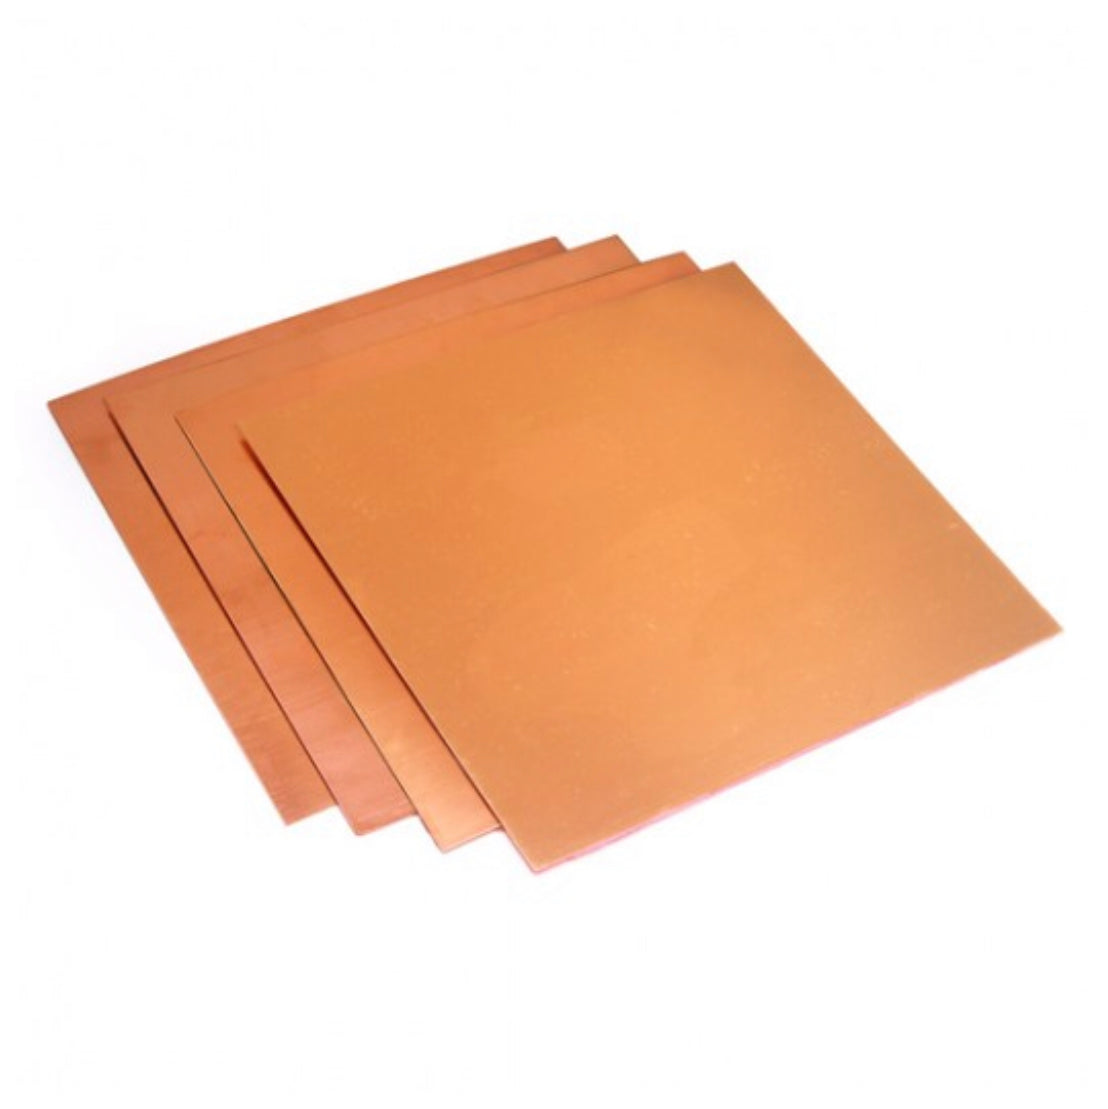 Copper Metal Sheet - by Contenti - K. A. Artist Shop